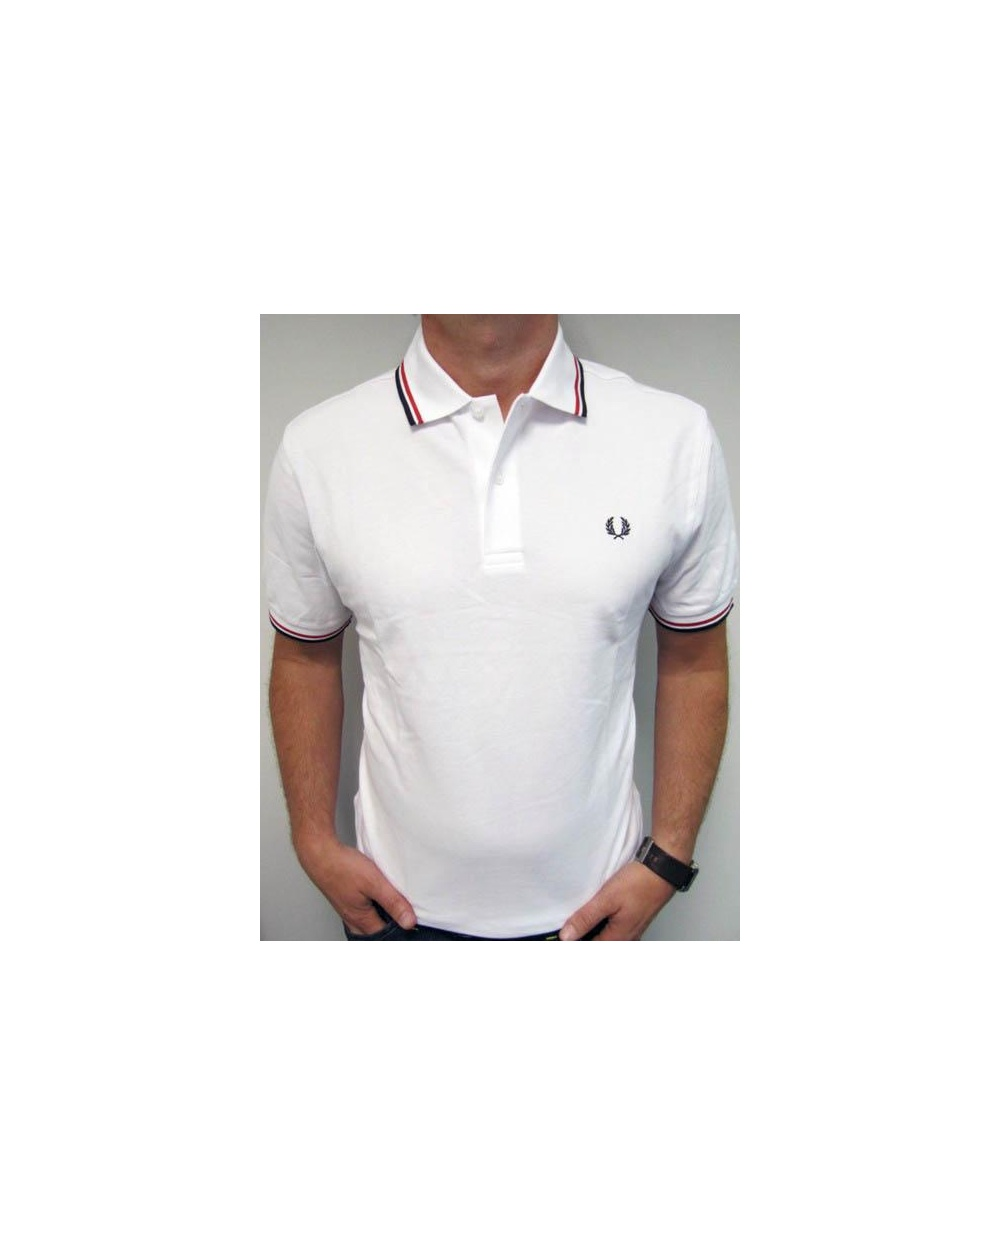 8cd8d0211 Fred Perry Twin Tipped Polo Shirt White/Red/Navy - fred perry mens black  polo shirt